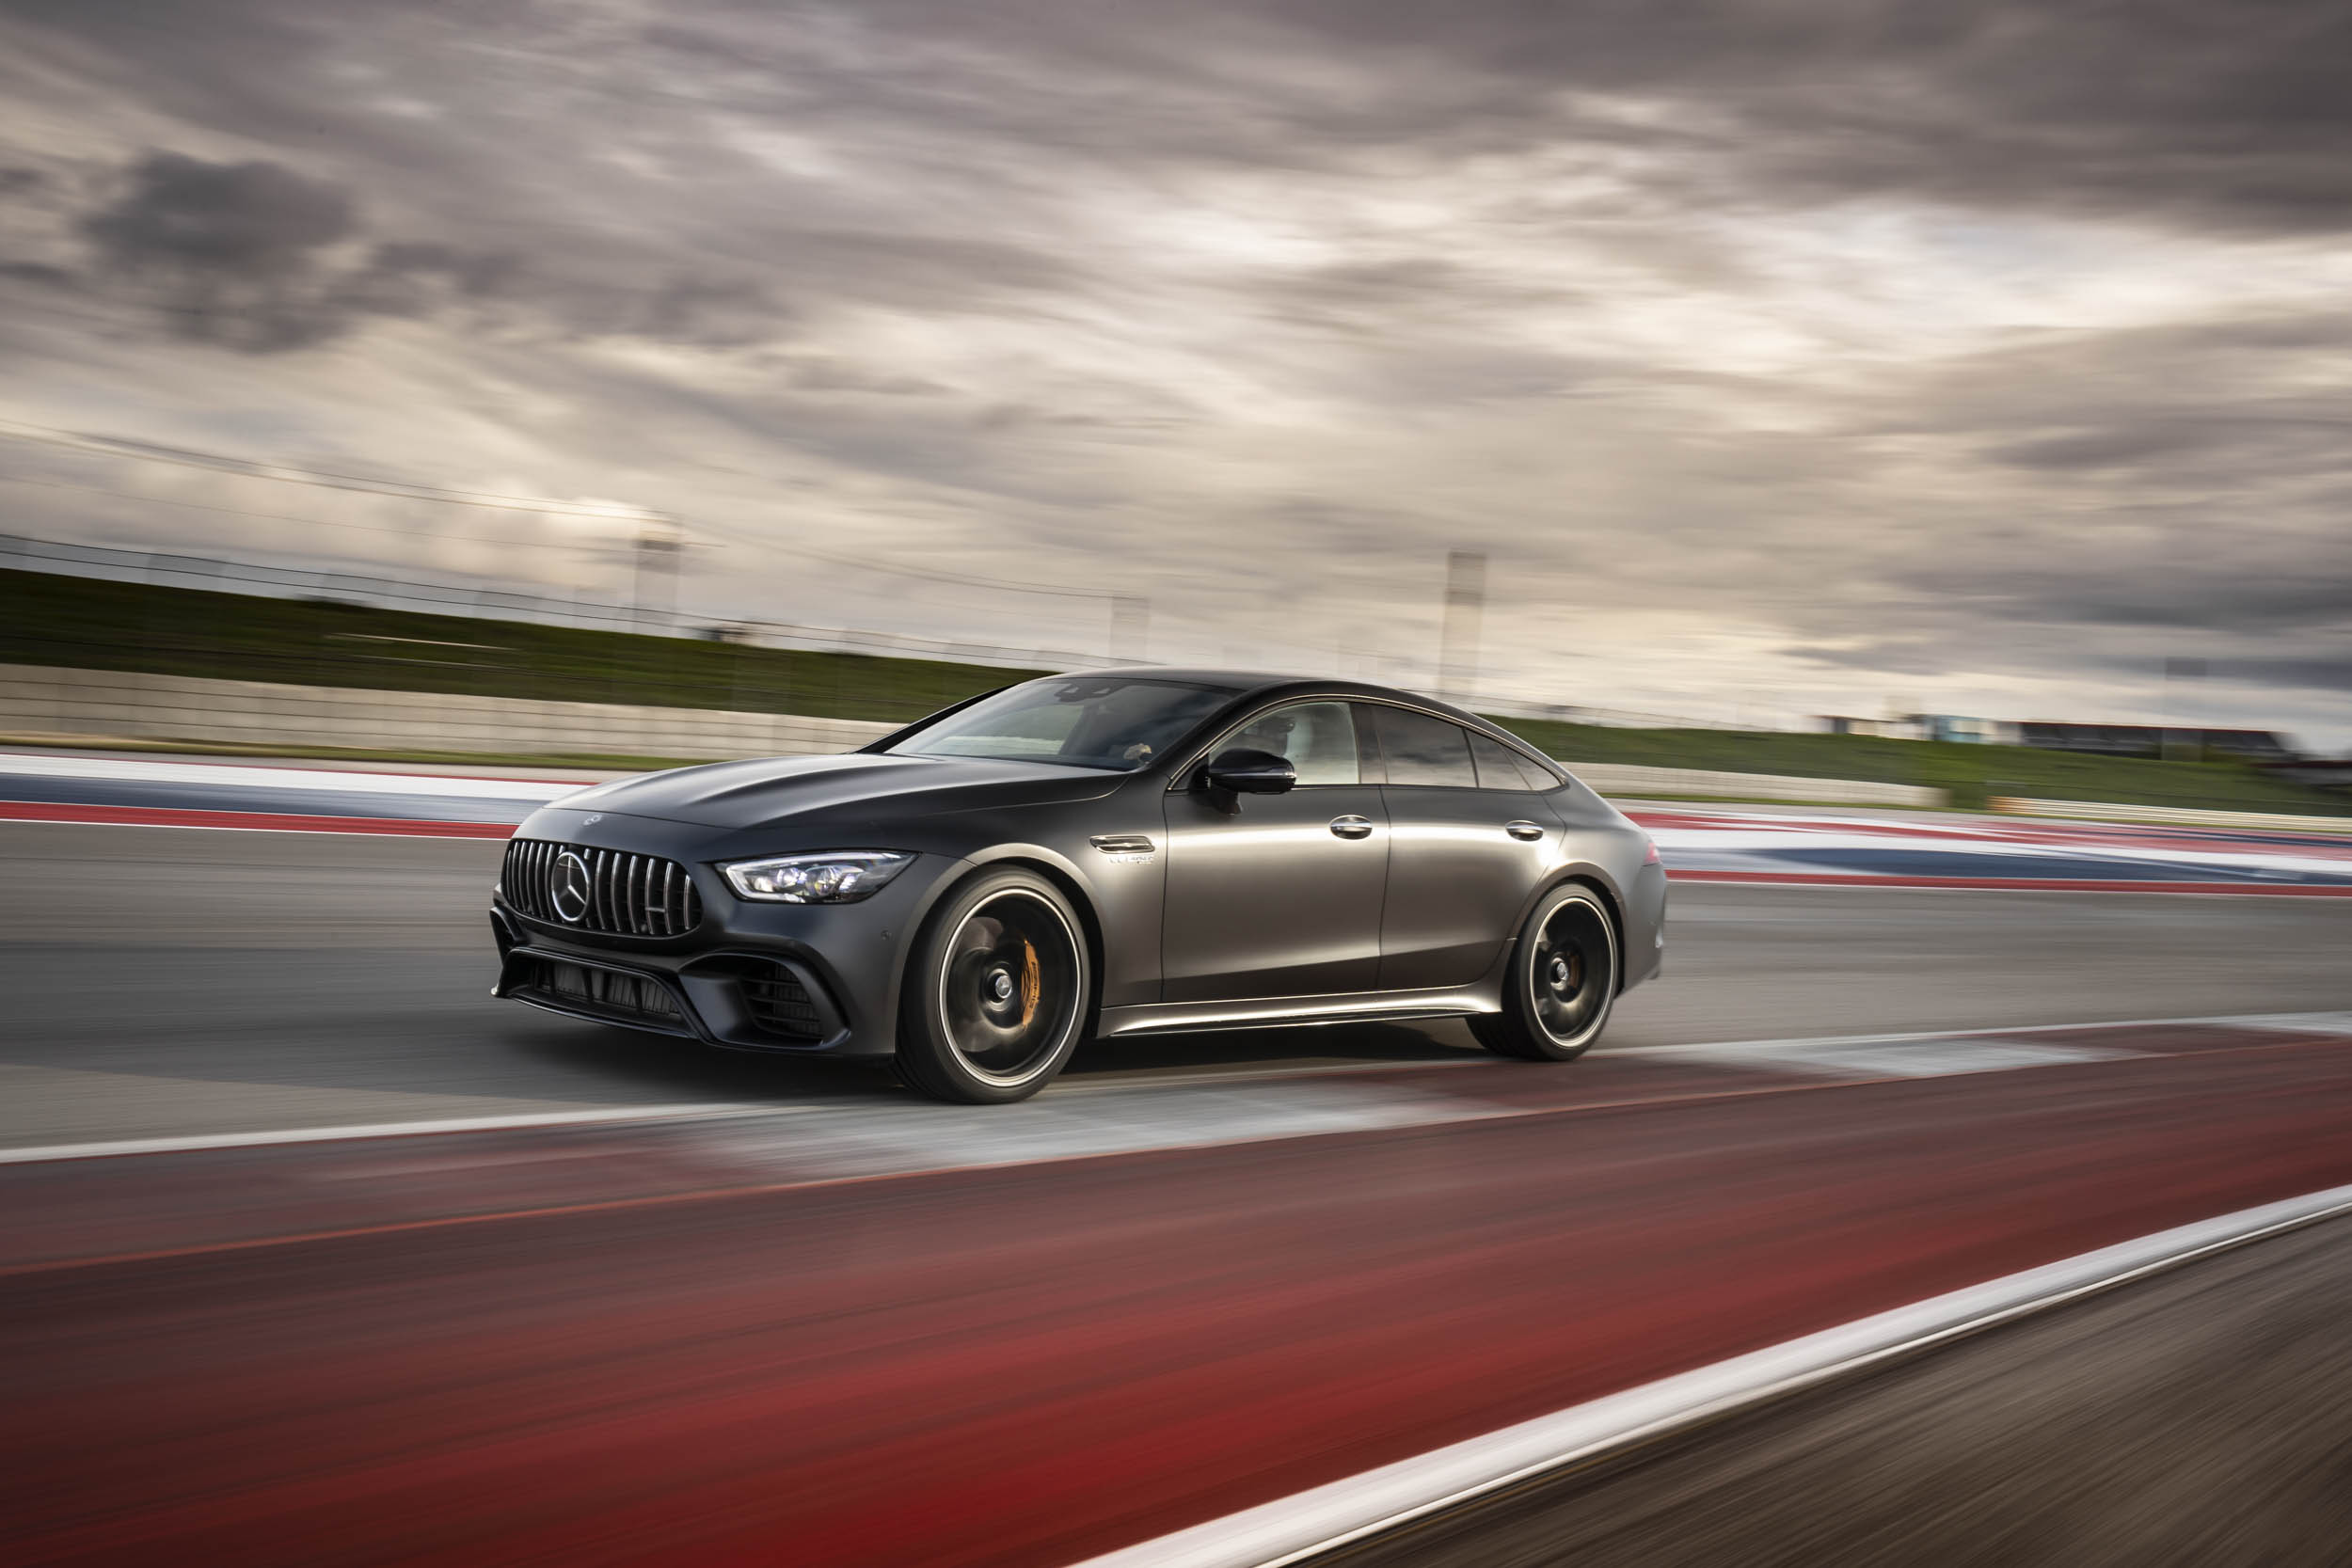 Mercedes-AMG GT 63 S track profile